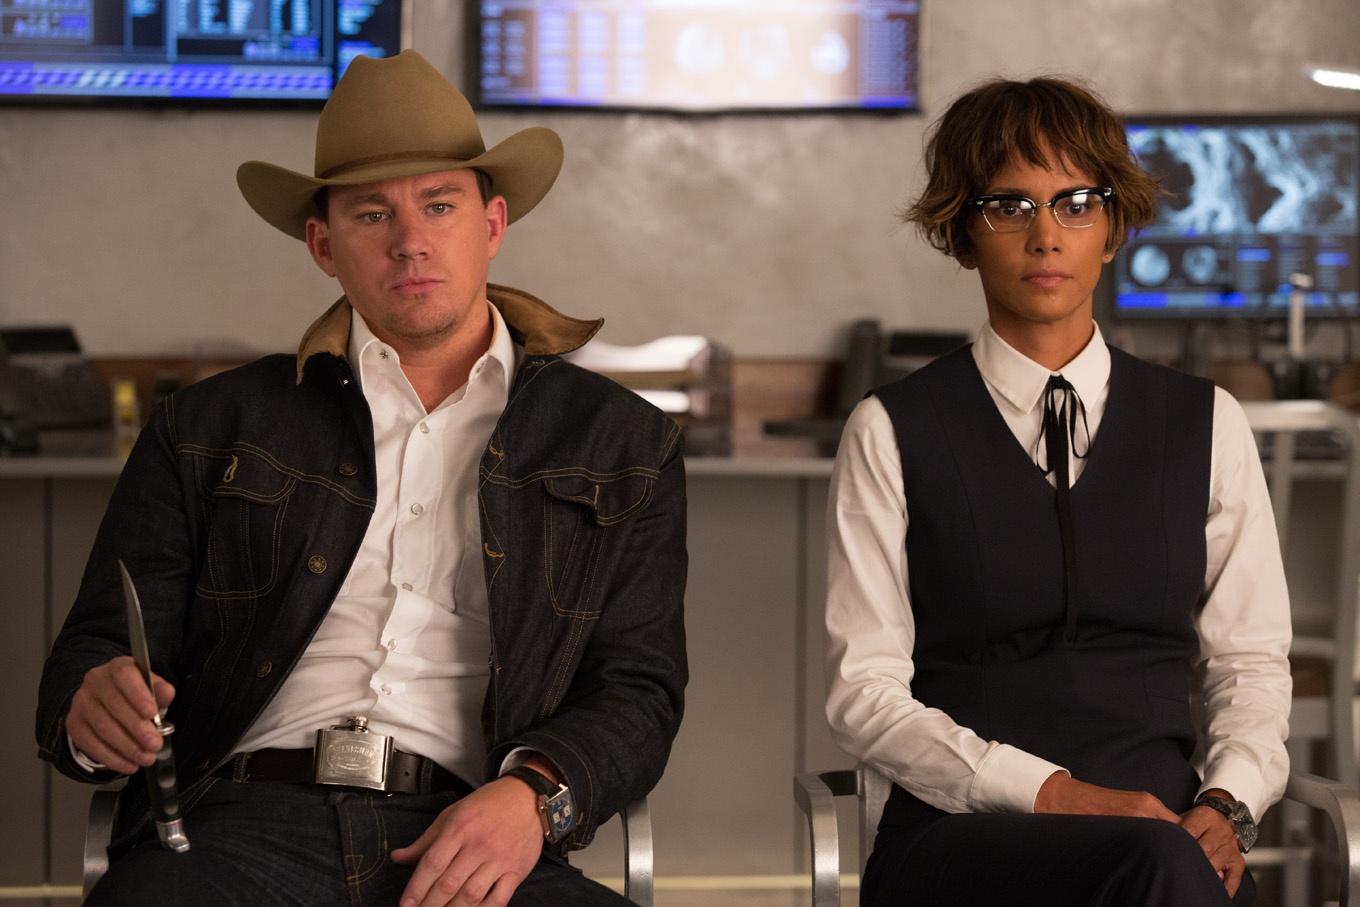 ALL-STAR. Channing Tatum and Halle Berry are part of the film's all-star cast. Photo courtesy of 20th Century Fox